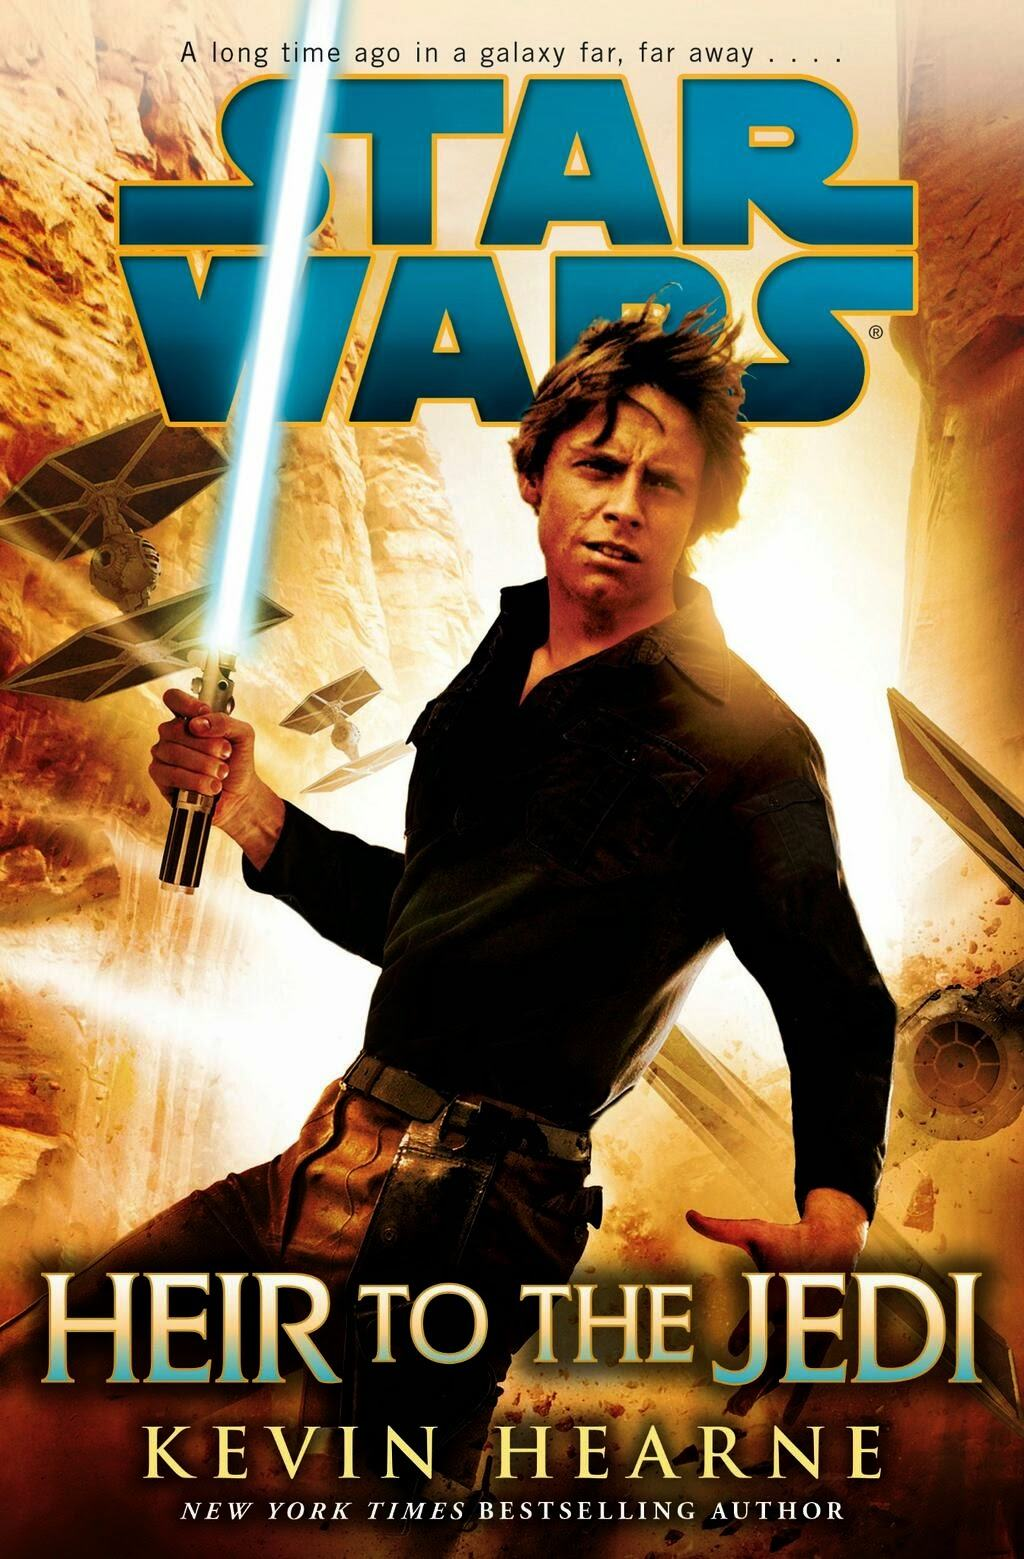 Star Wars: Heir to the Jedi Book Cover